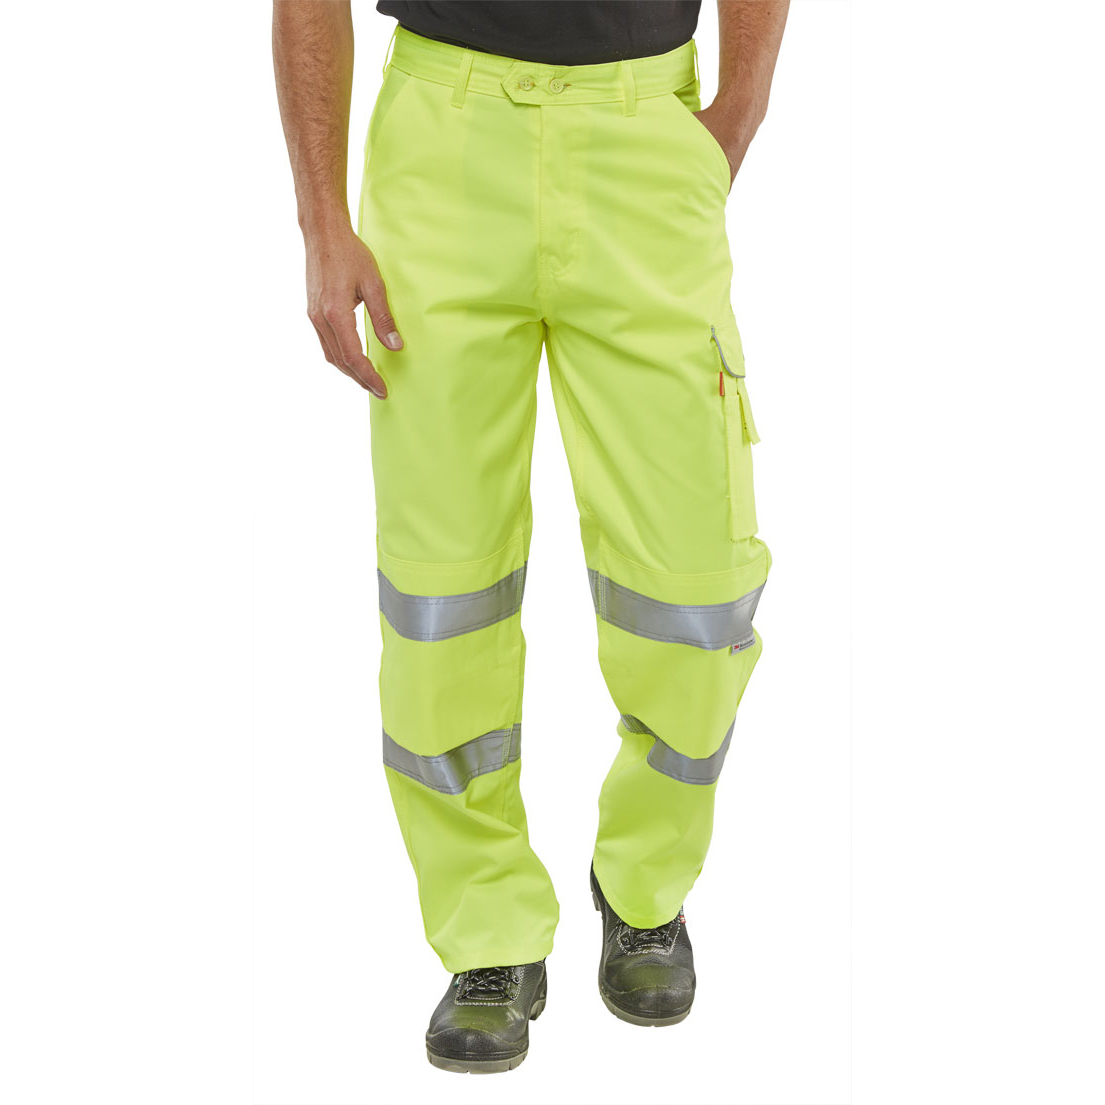 Ladies BSeen Trousers Polycotton Hi-Vis EN471 Saturn Yellow 40 Long Ref PCTENSY40T *Up to 3 Day Leadtime*